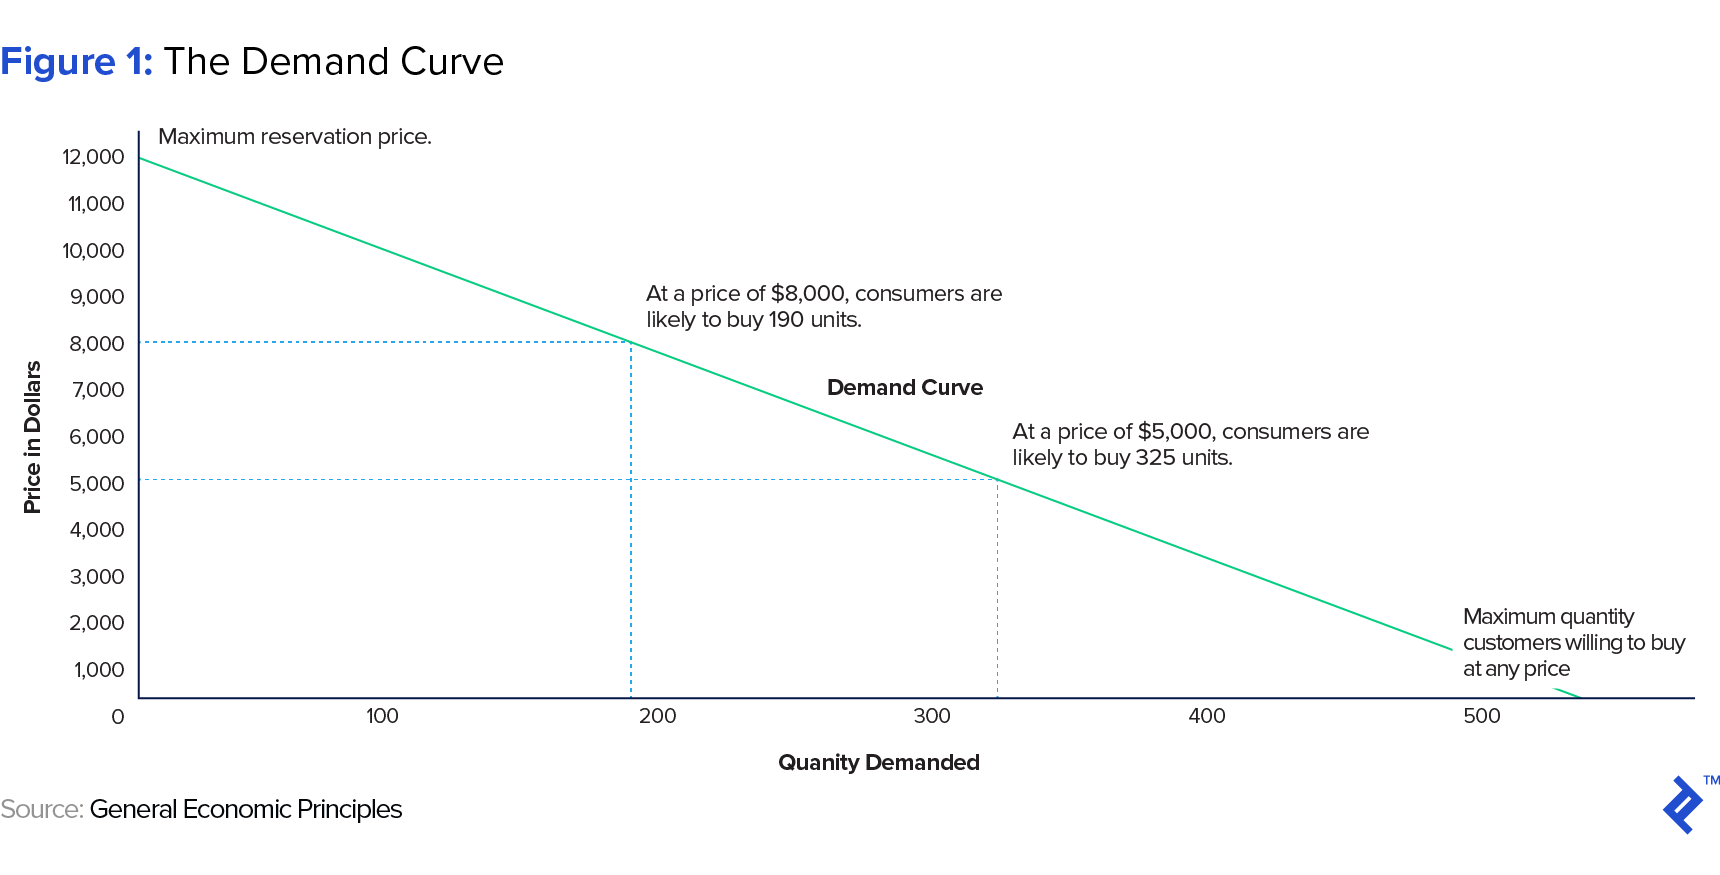 Figure 1: The Demand Curve